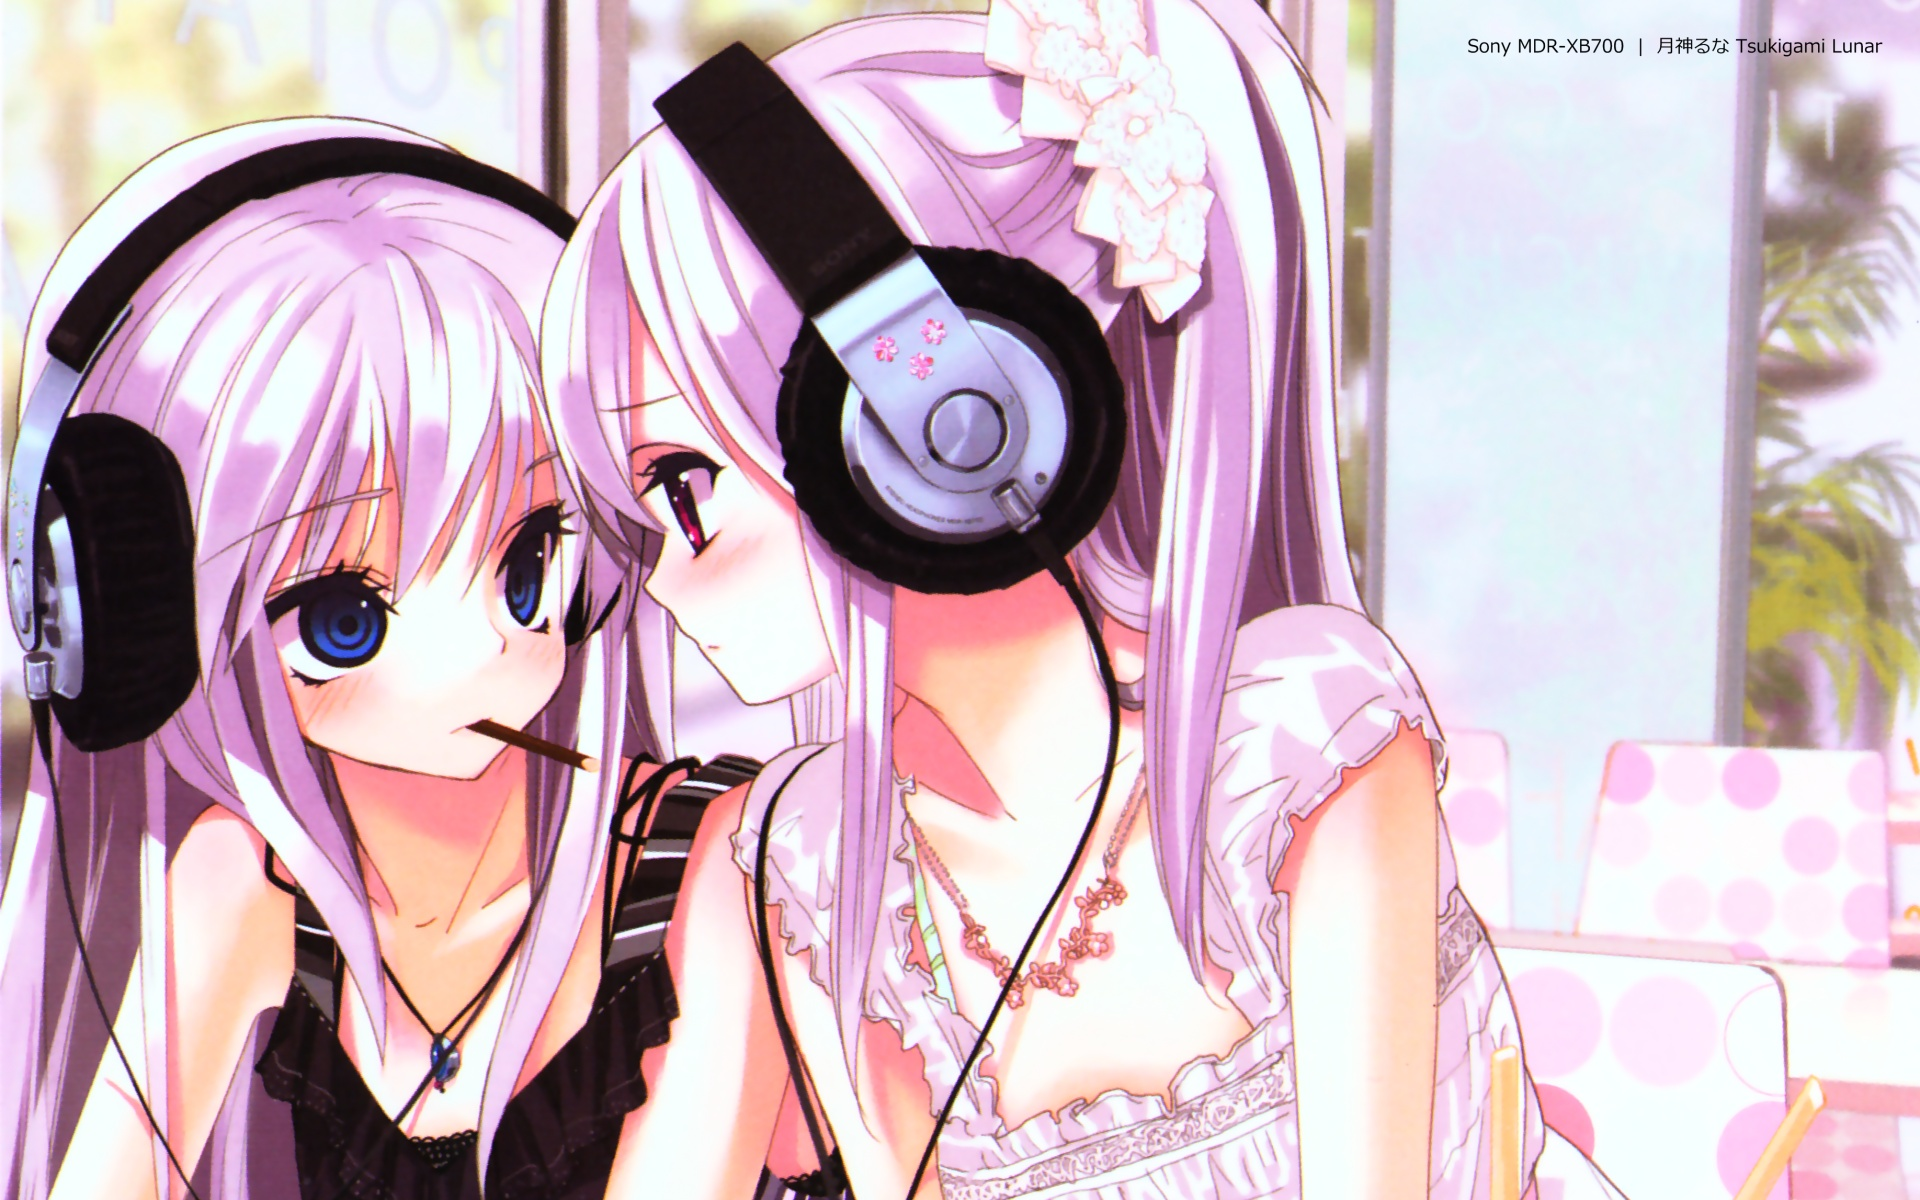 Anime - Headphones  Pocky Anime Wallpaper